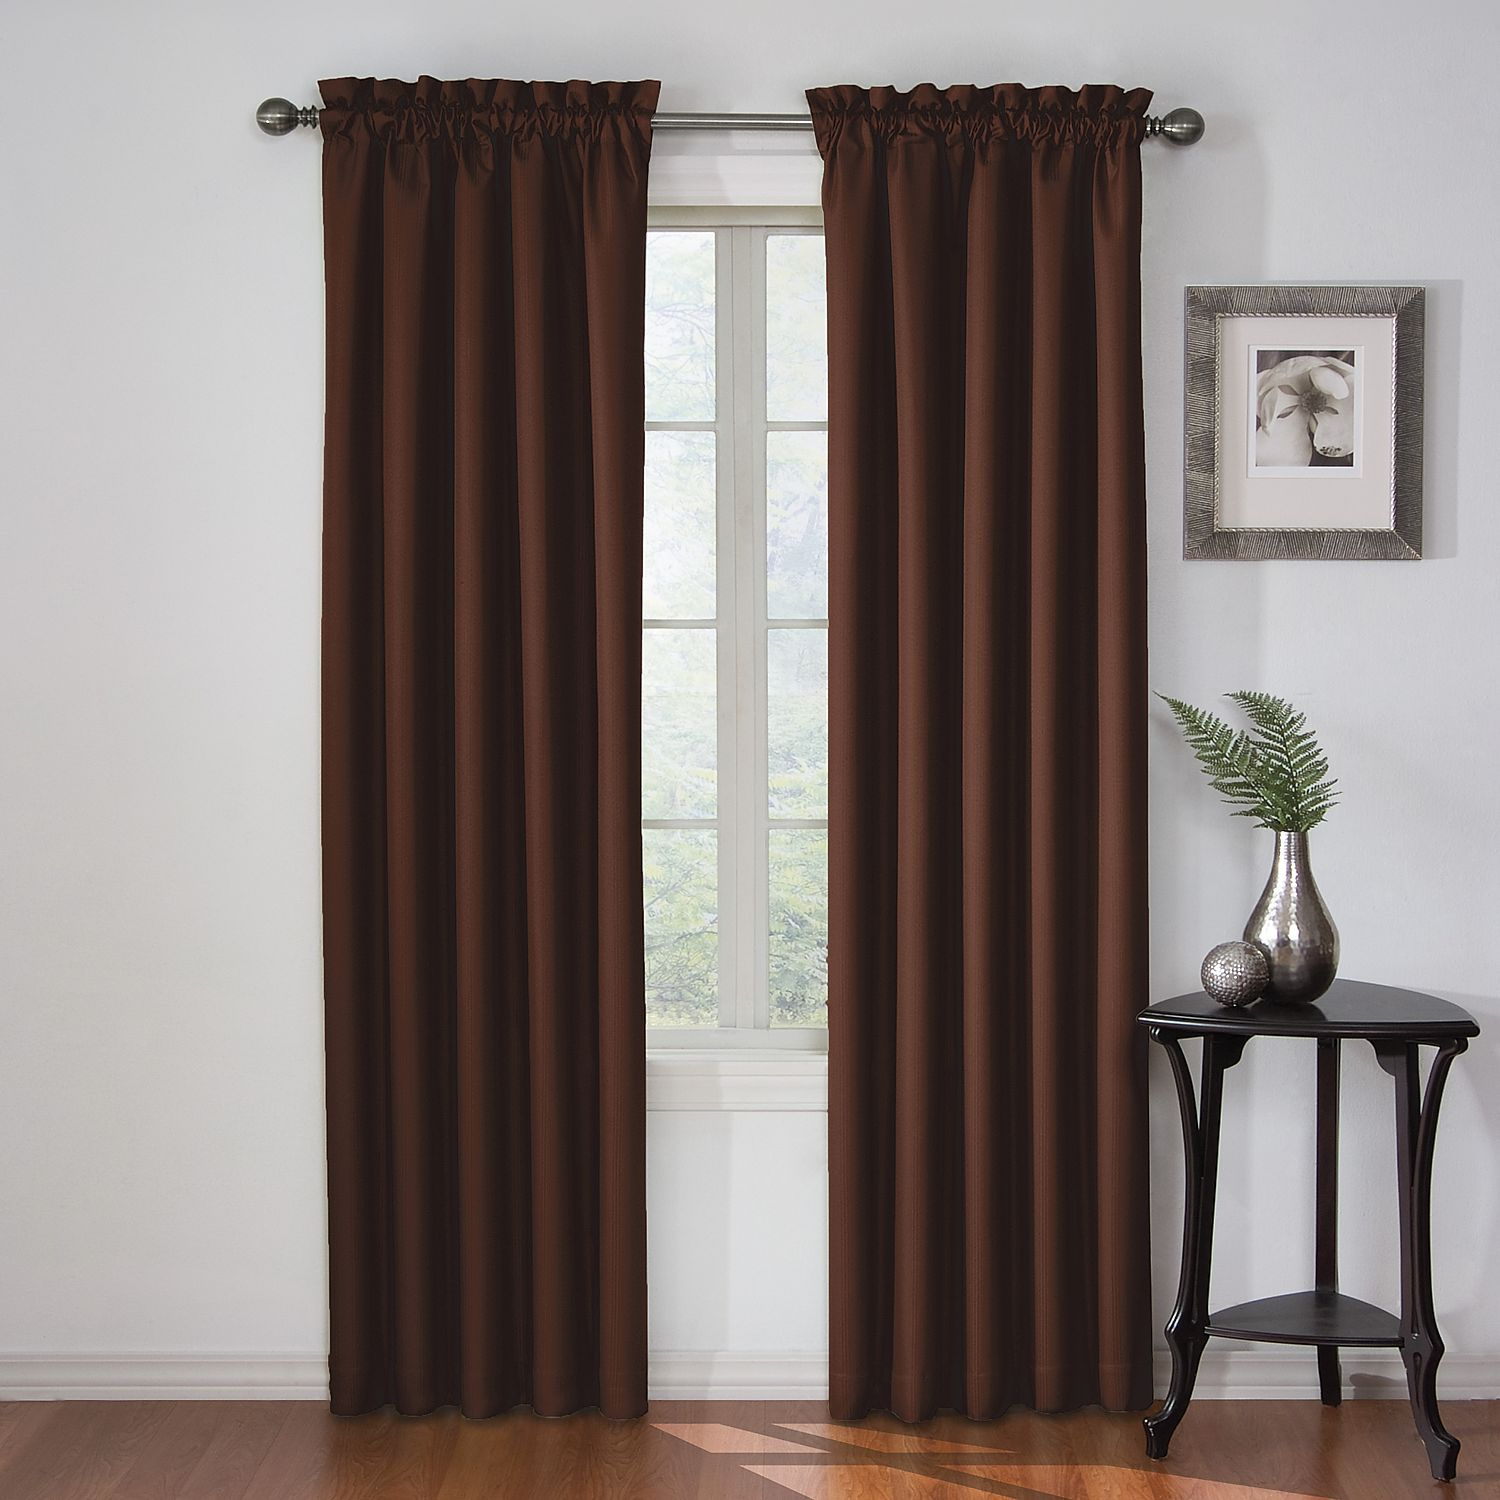 Eclipse Corinne Thermaback Blackout Curtain